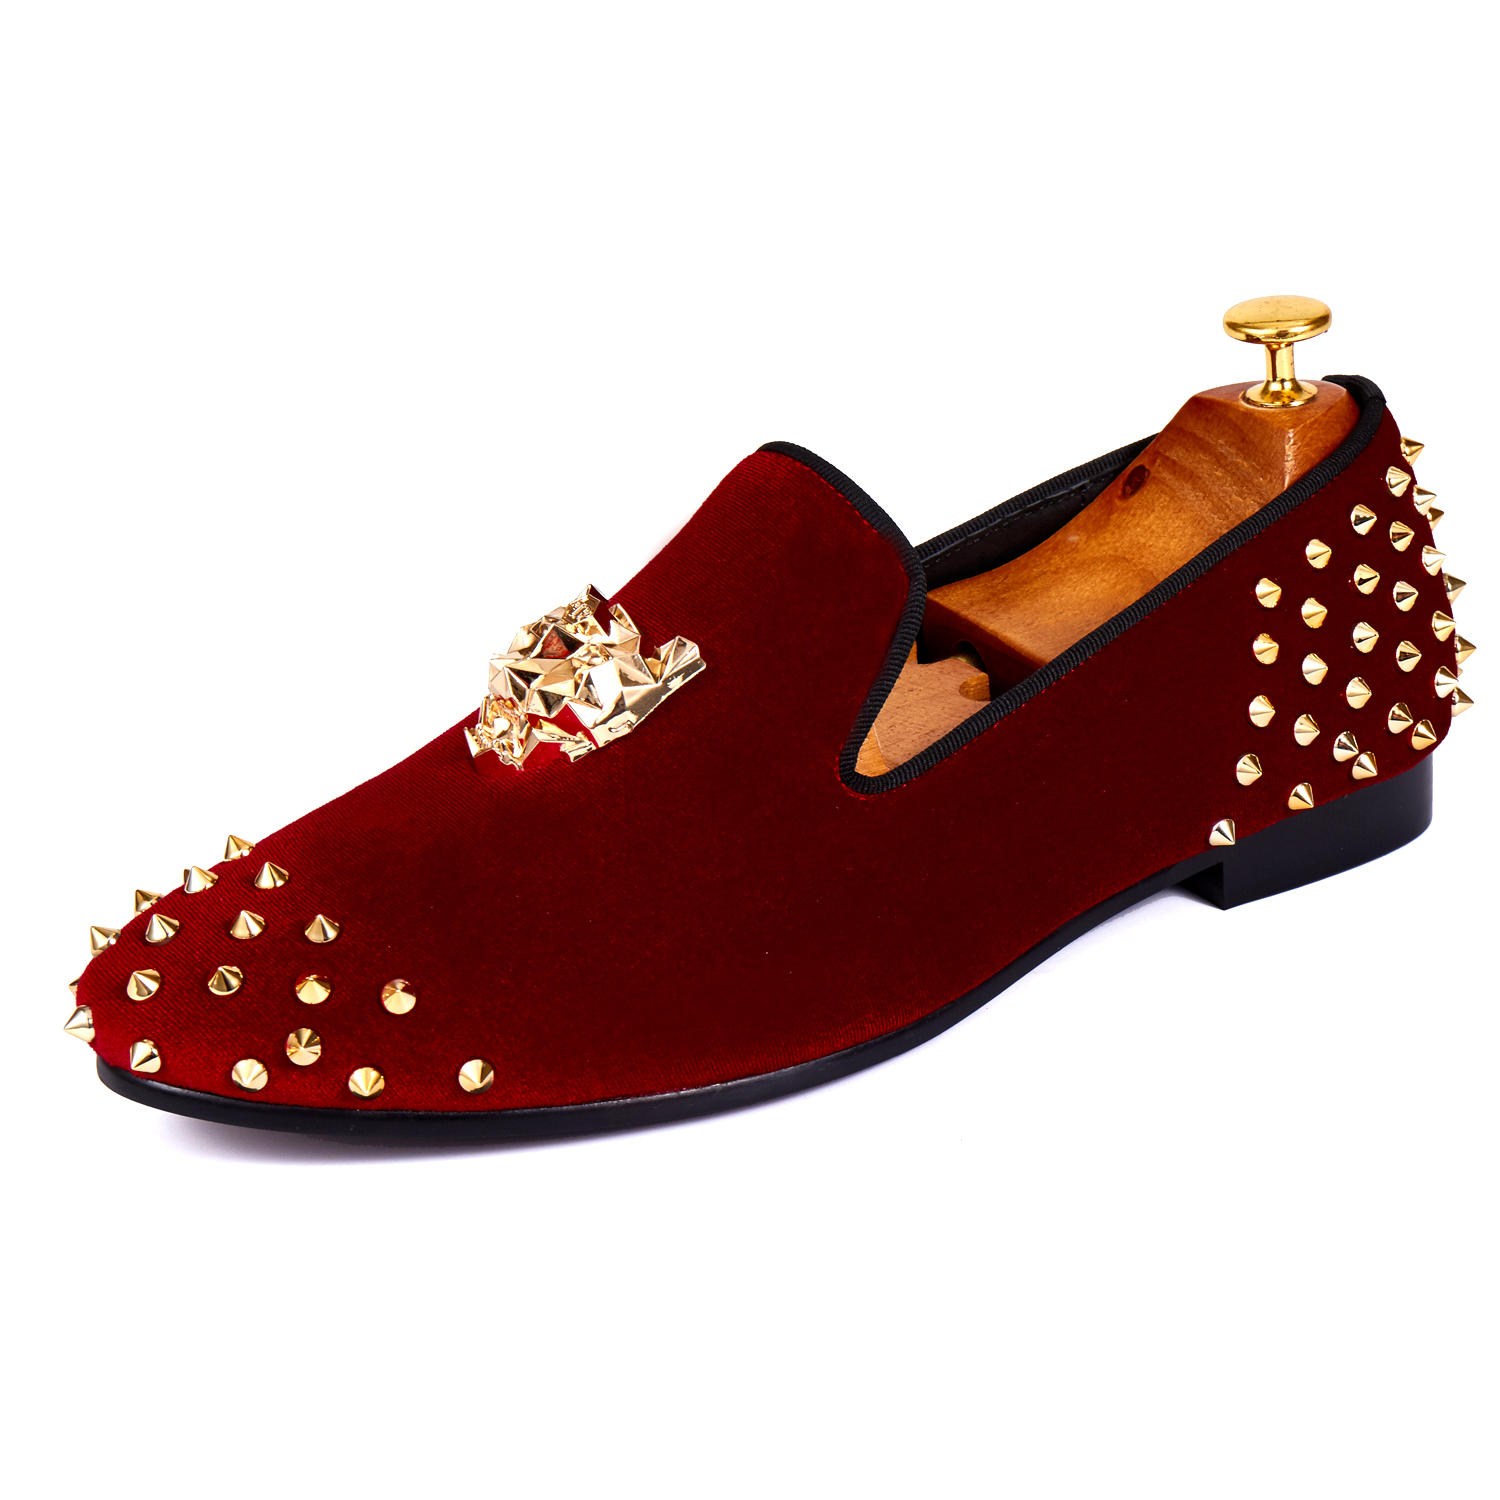 Harpelunde Mens Robe Chaussures Rivets Rouge Velours Mocassins Animal Boucle Appartements Taille 7-14